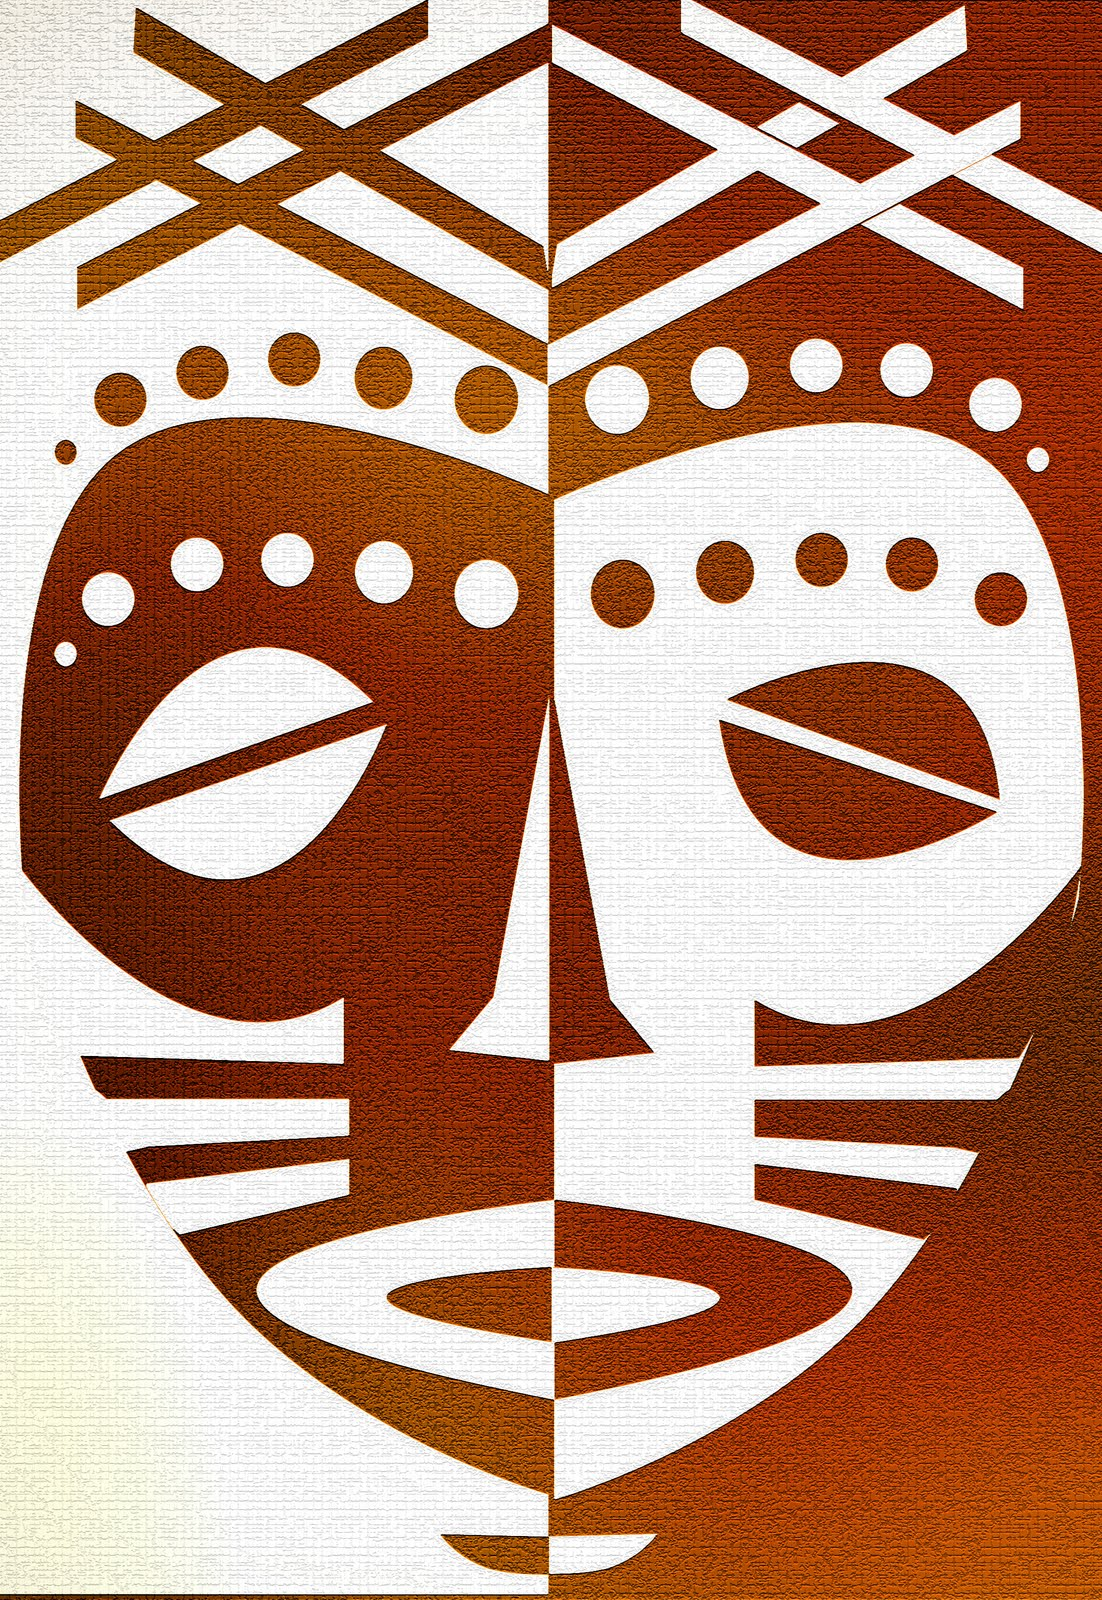 From Our Palette: Mask (Theme # 86, Picture # 22)